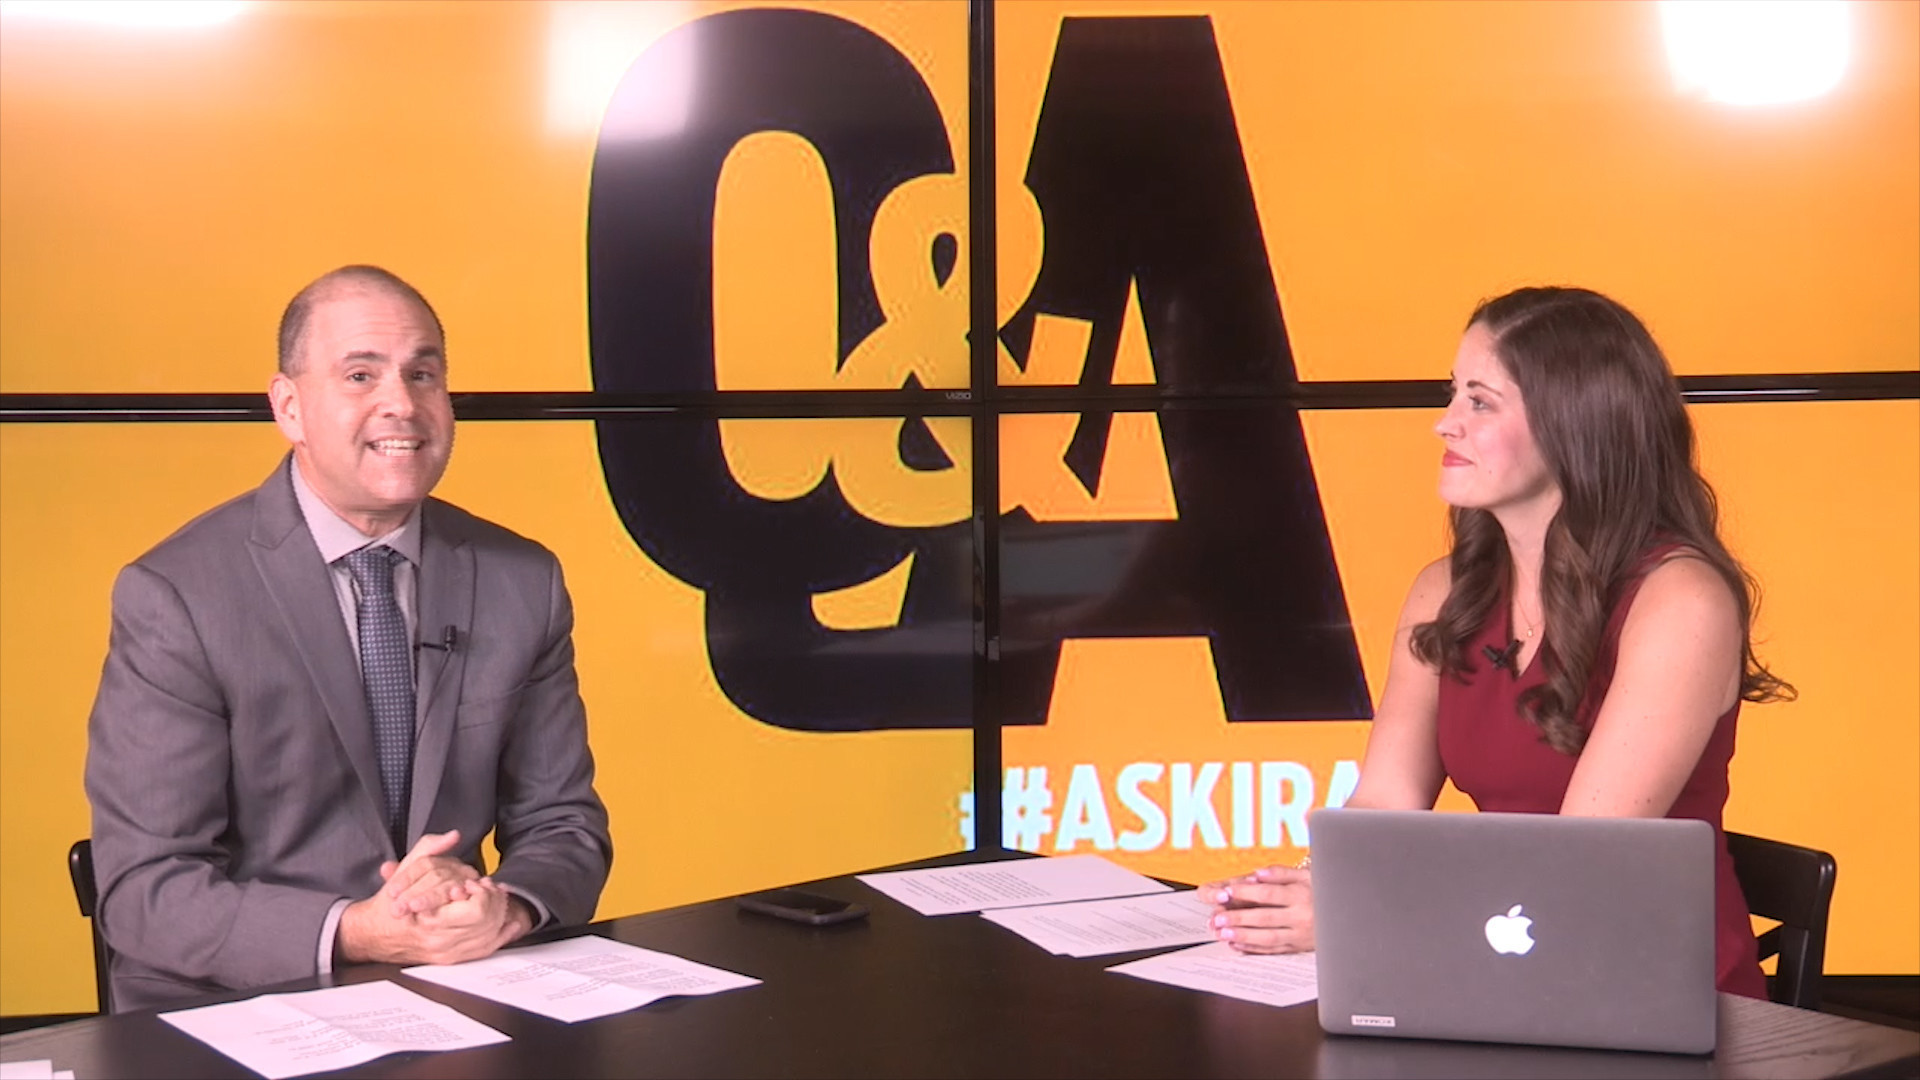 Fl-ask-ira-live-top-point-guards-20171214-video